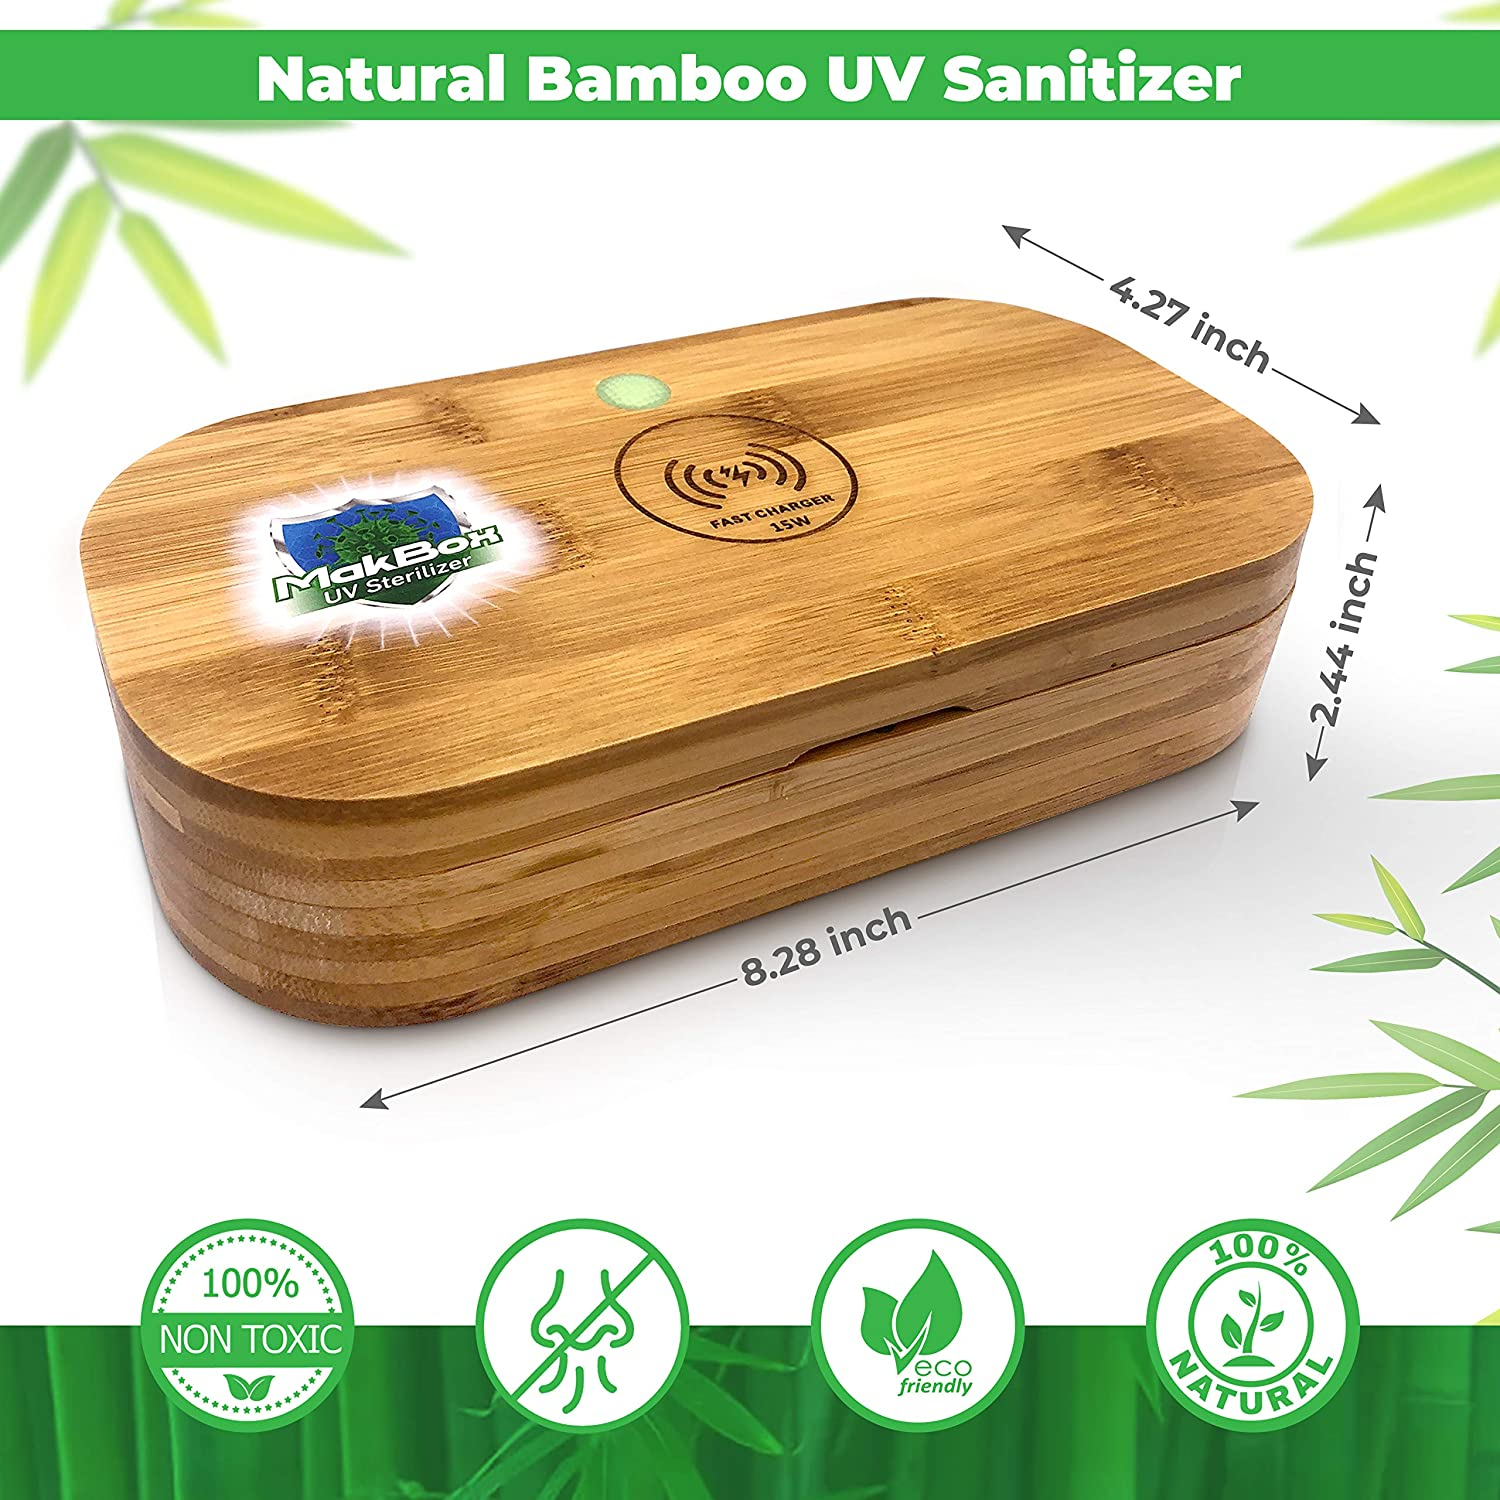 Sanitizer Made with Natural Bamboo